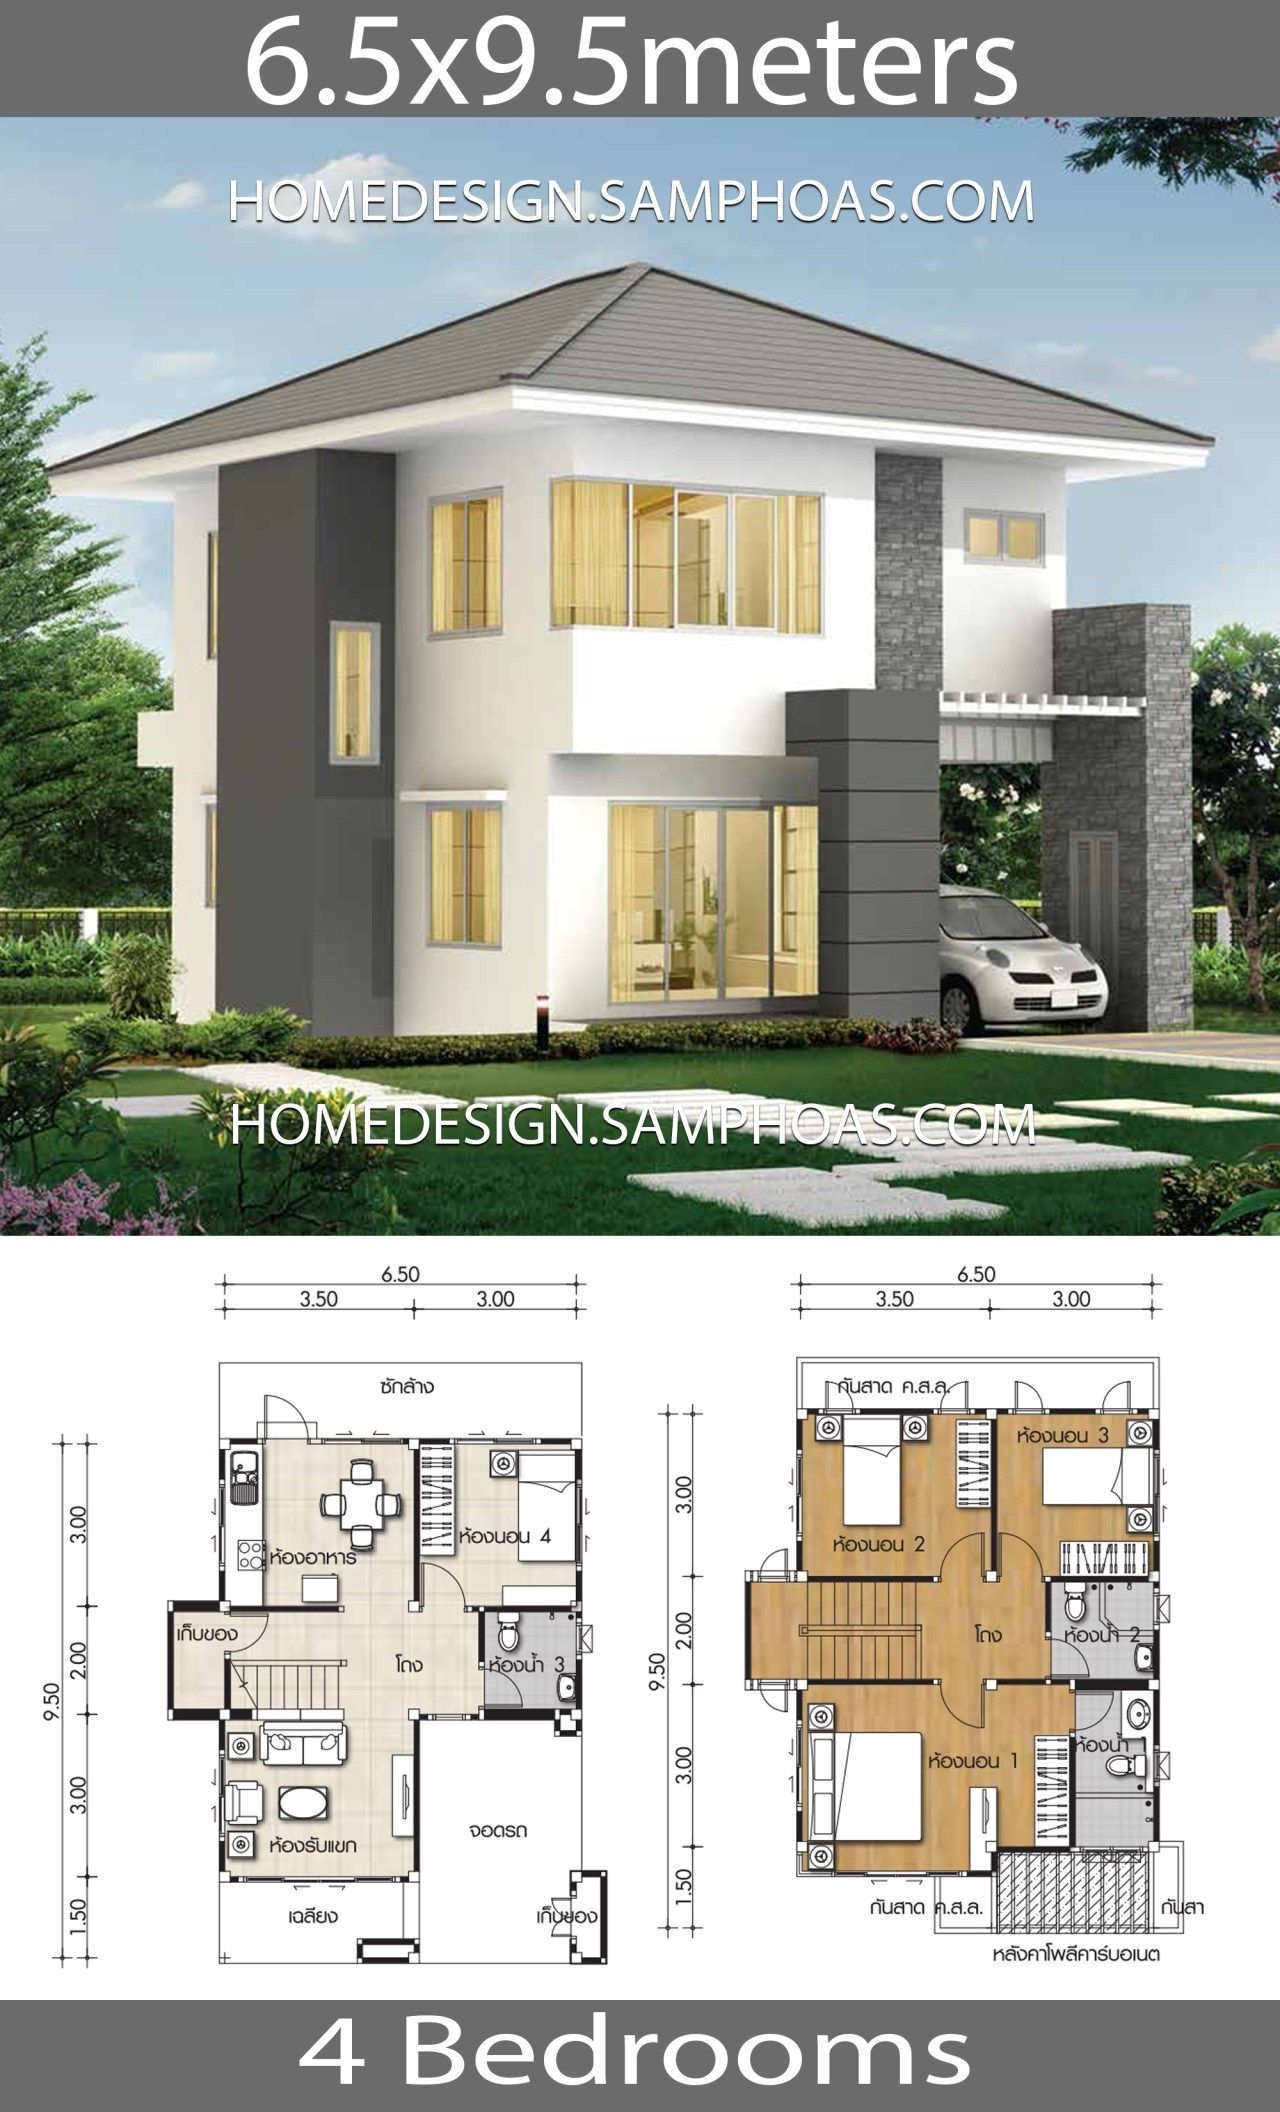 Small House Plans 6 5x9 5m With 4 Bedrooms Model House Plan Small House Plans Small House Layout